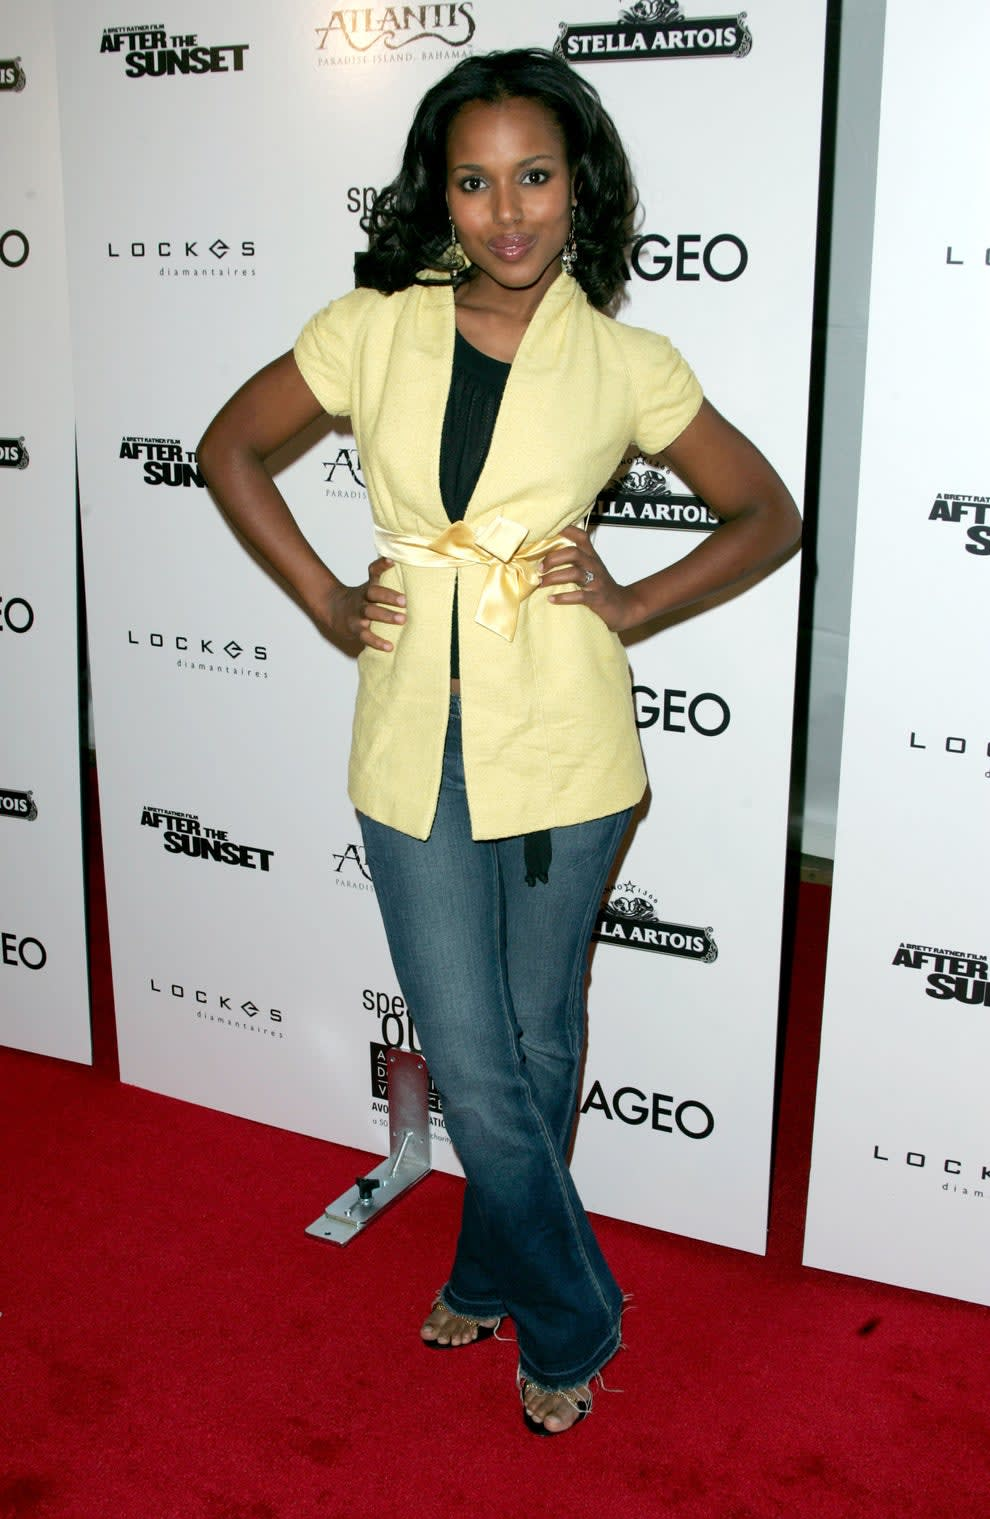 Kerry wears a yellow short-sleeved jacket with a ribbon tied at the waist with dark wash jeans and sandals.